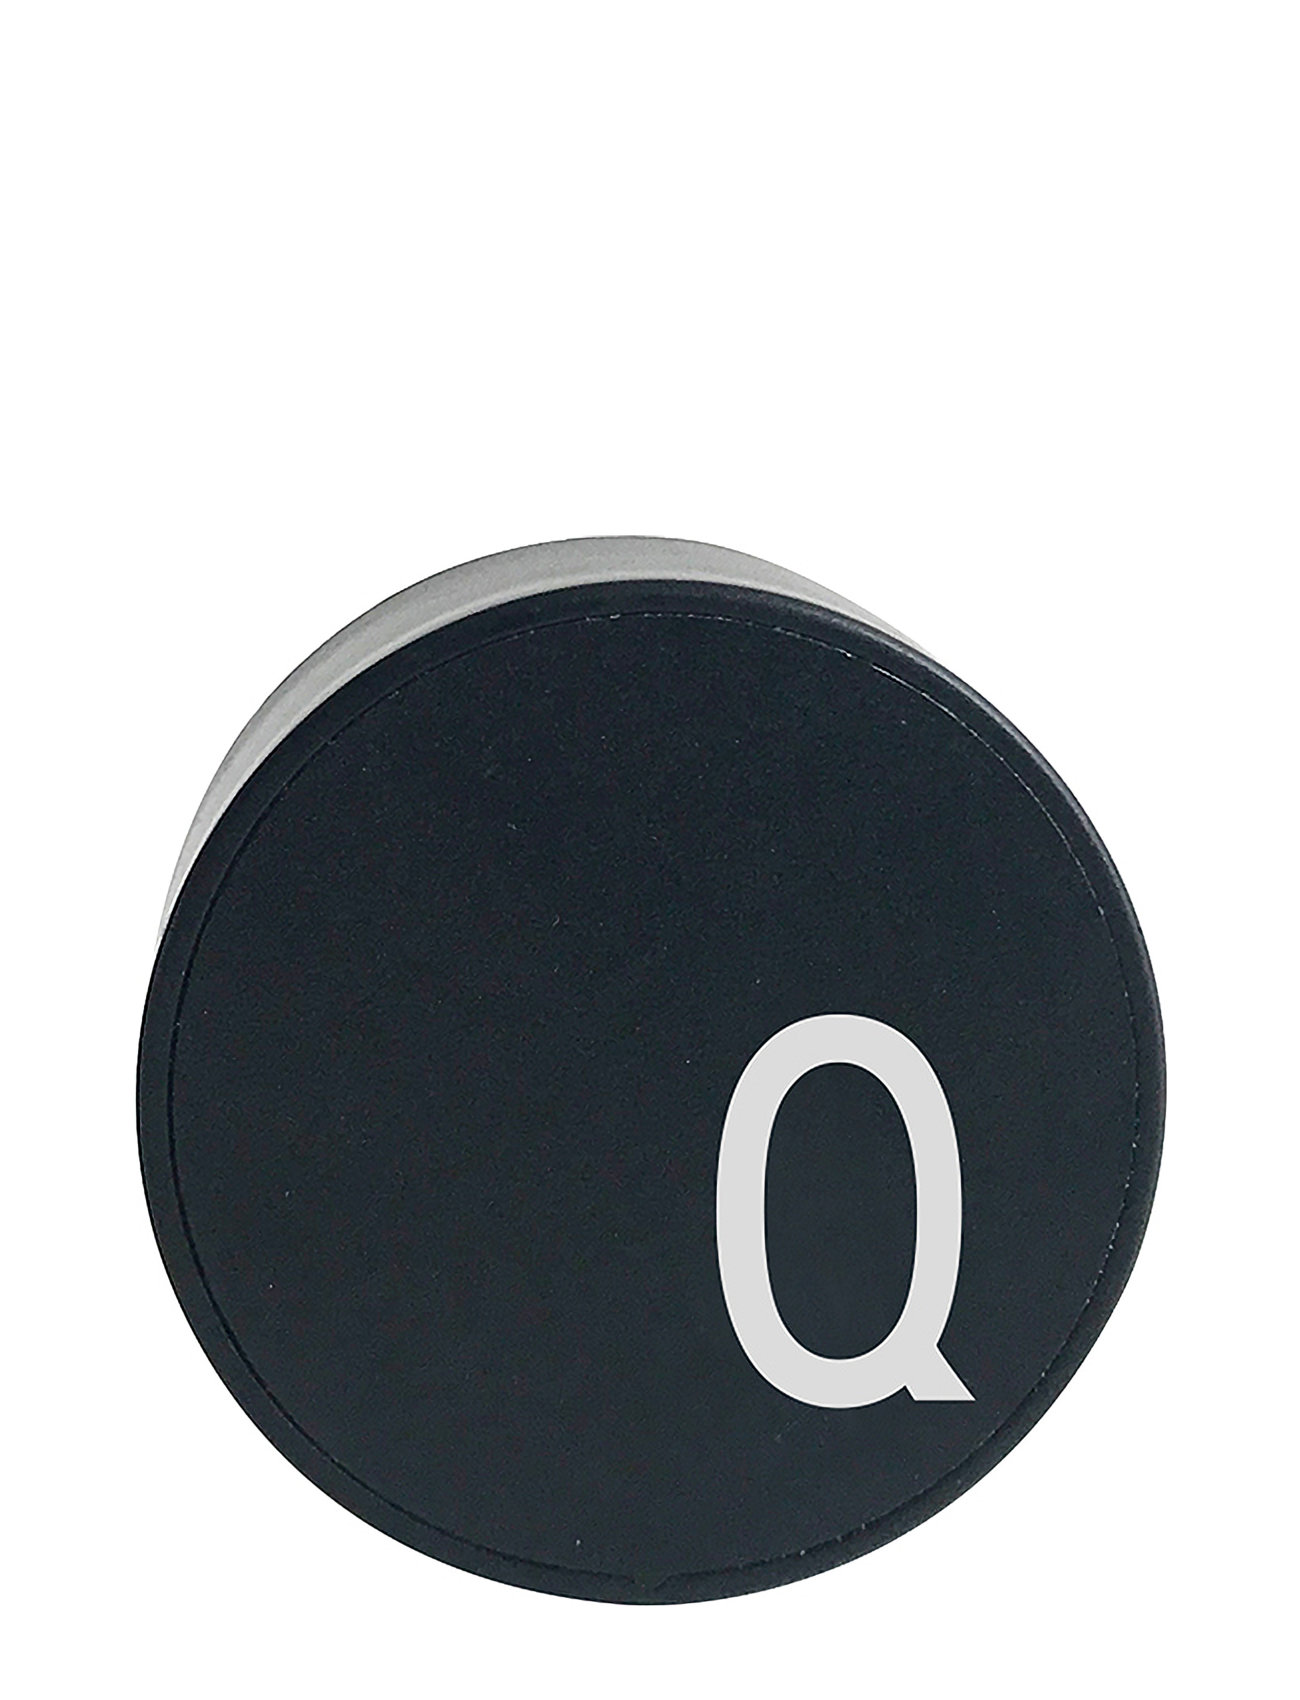 Image of Charger A-Z Mobilaccessory/covers Sort Design Letters (3256139319)